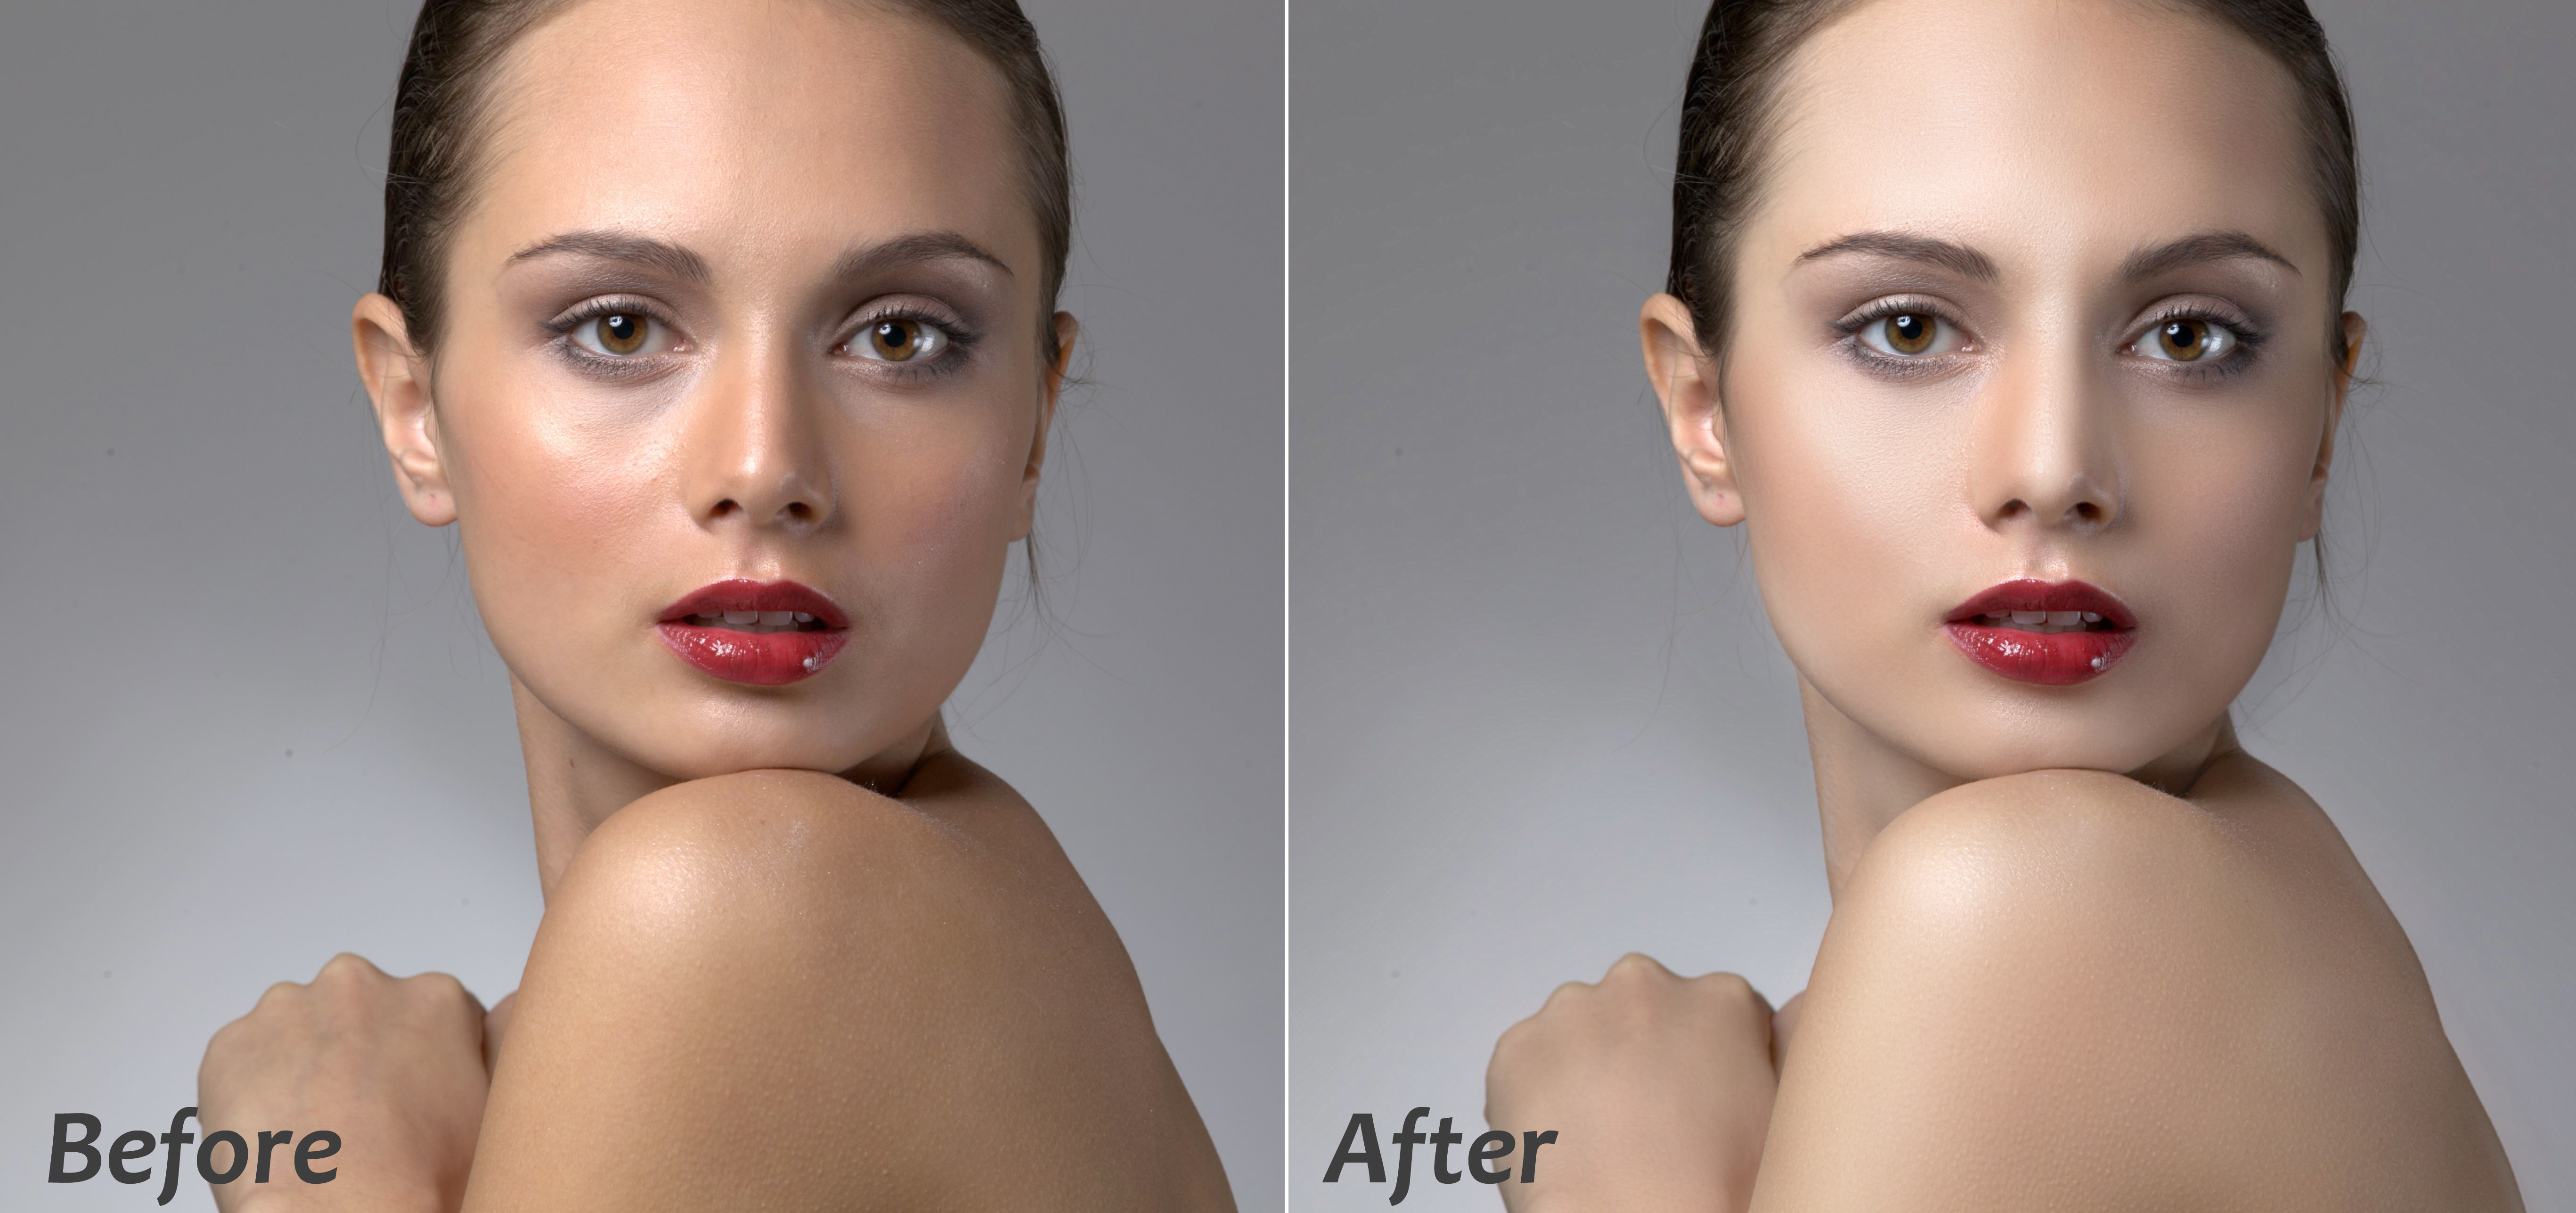 fotosolution-How-to-make-beauty-retouching-2-1